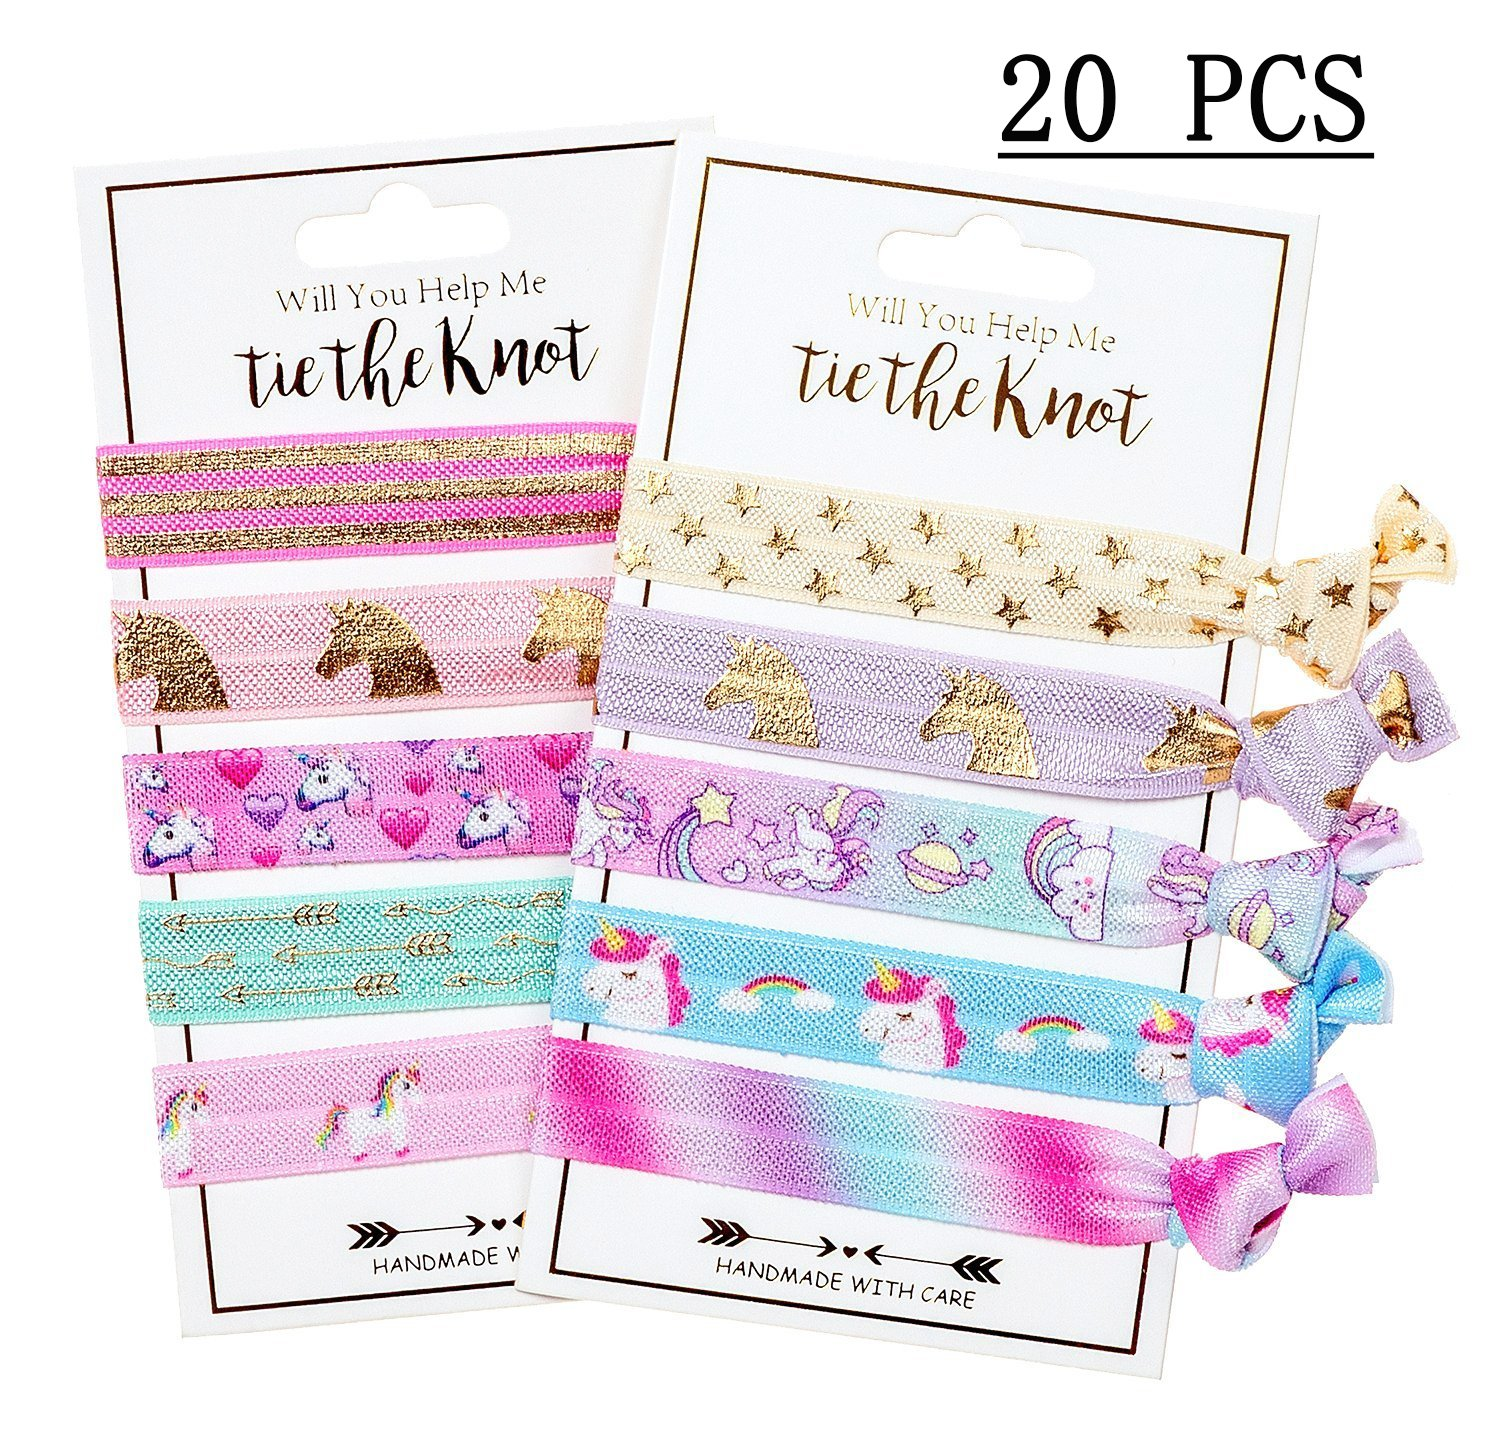 Unicorn Hair Ties Party Favors Birthday Gifts Supplies - Girls Elastic Ponytail Holders Decorations